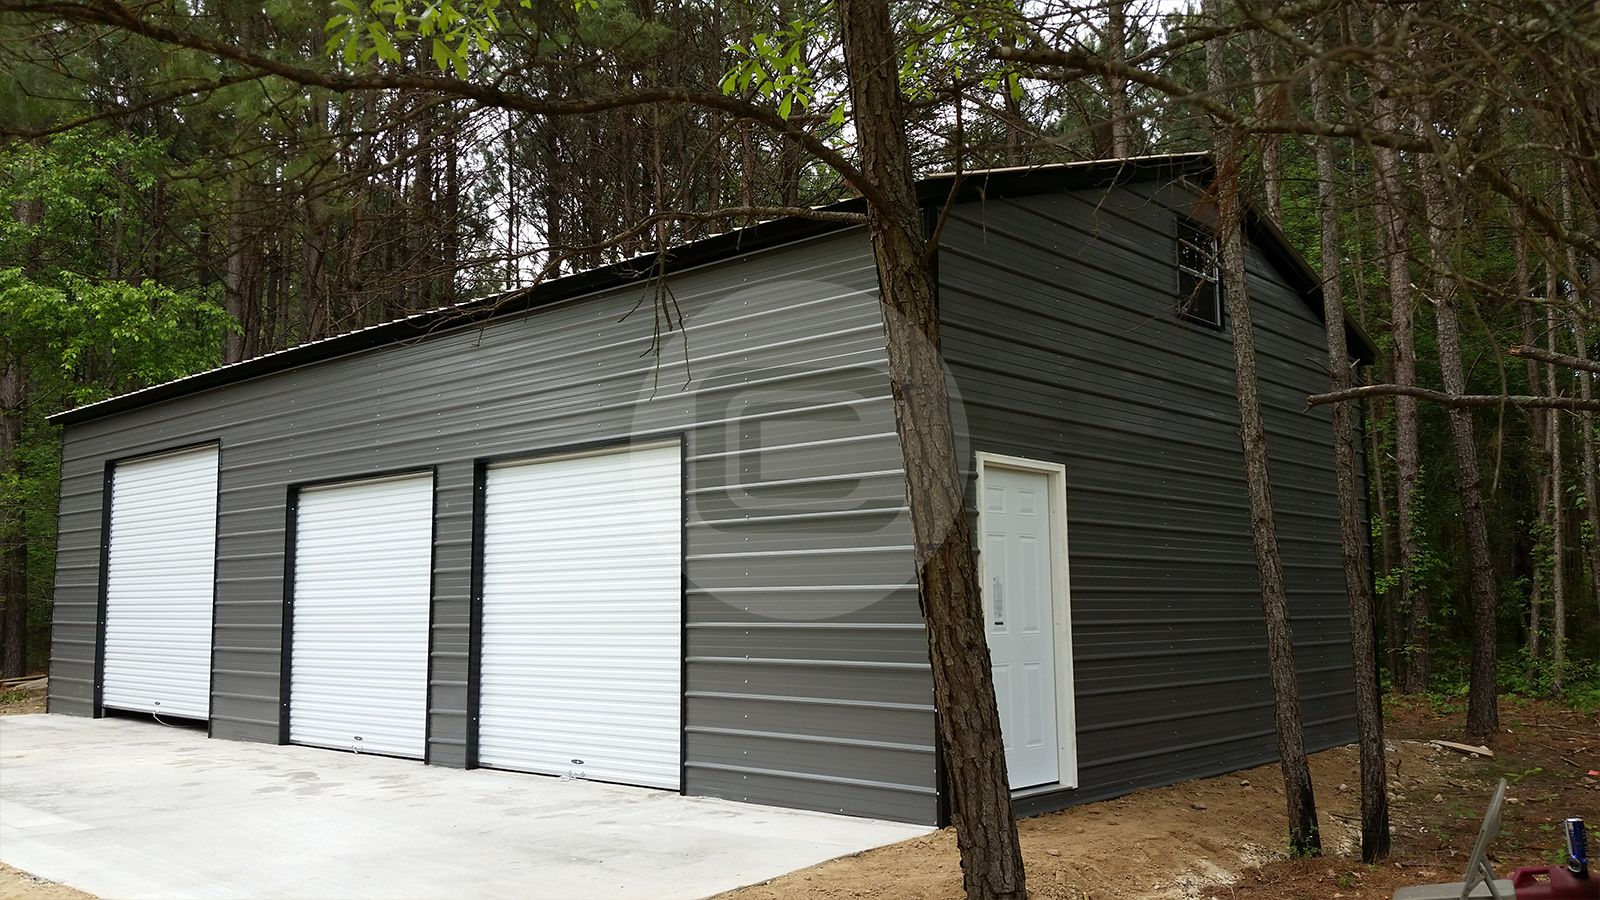 24 x 46 x 12 vertical roof style side entry metal garage x x vertical roof style side entry metal garage featuring x x roll up garage doors x window and x walk in door rubansaba